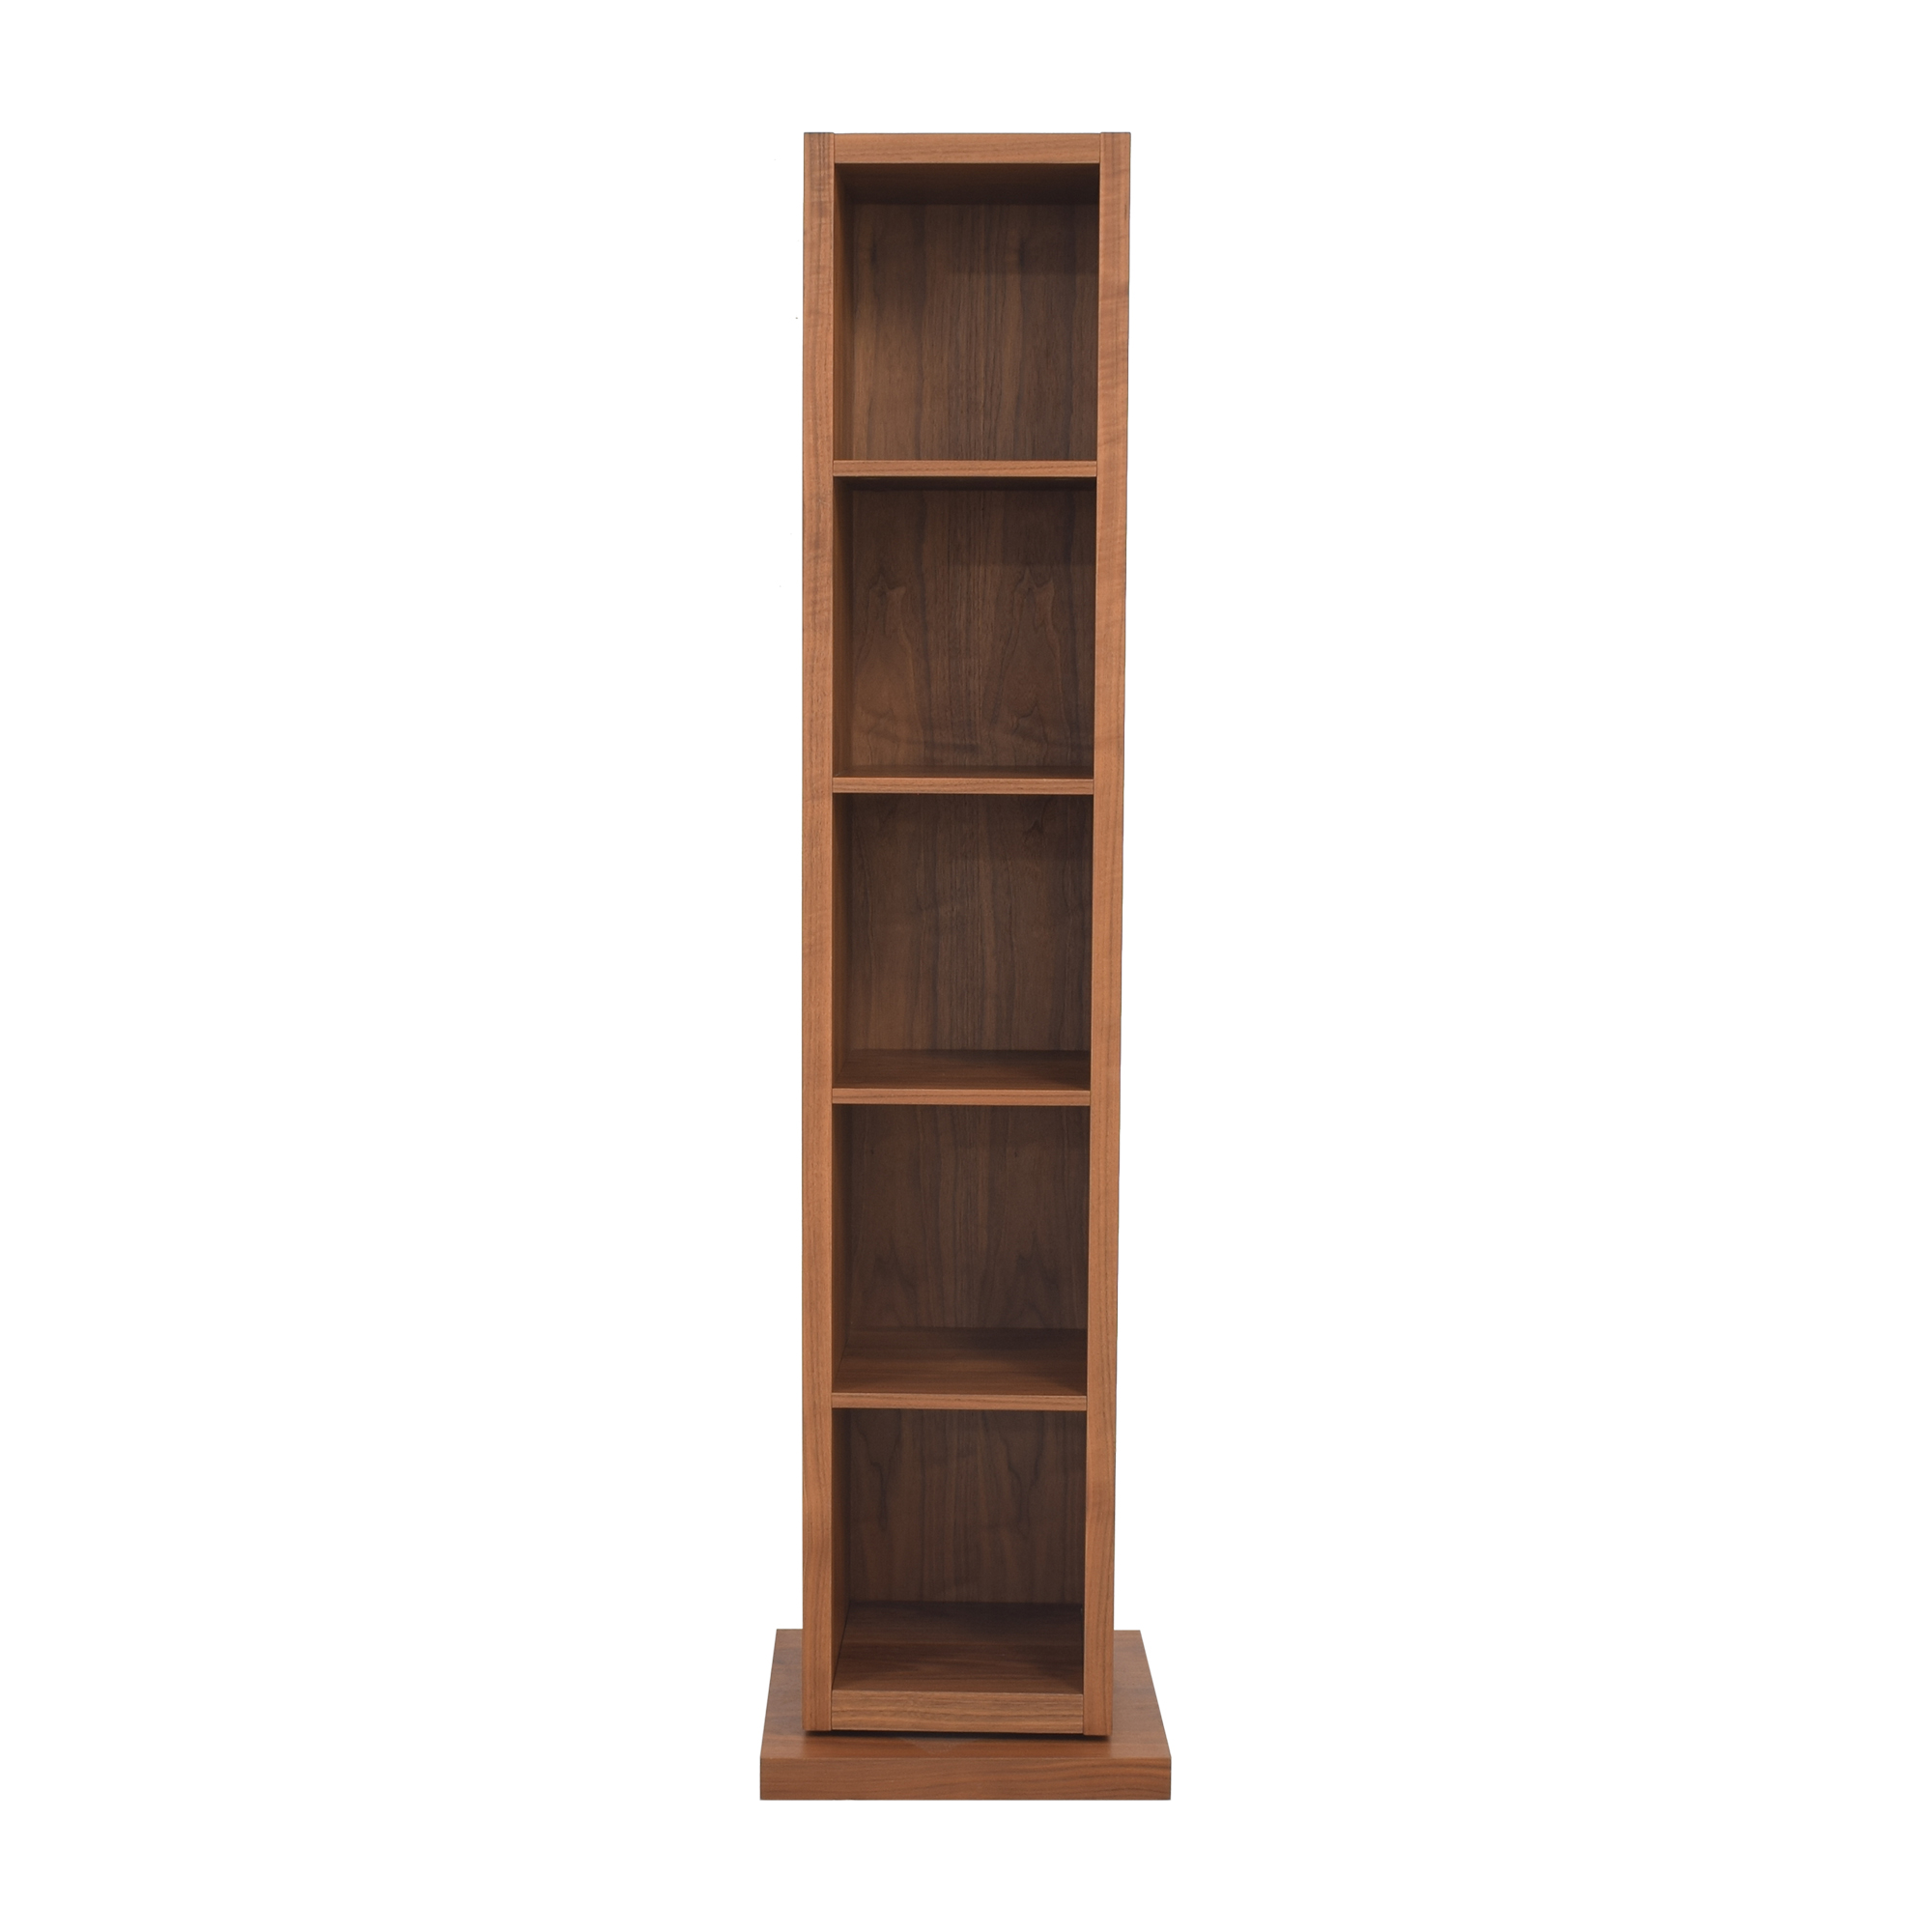 Modani Swivel Bookcase with Mirror / Bookcases & Shelving